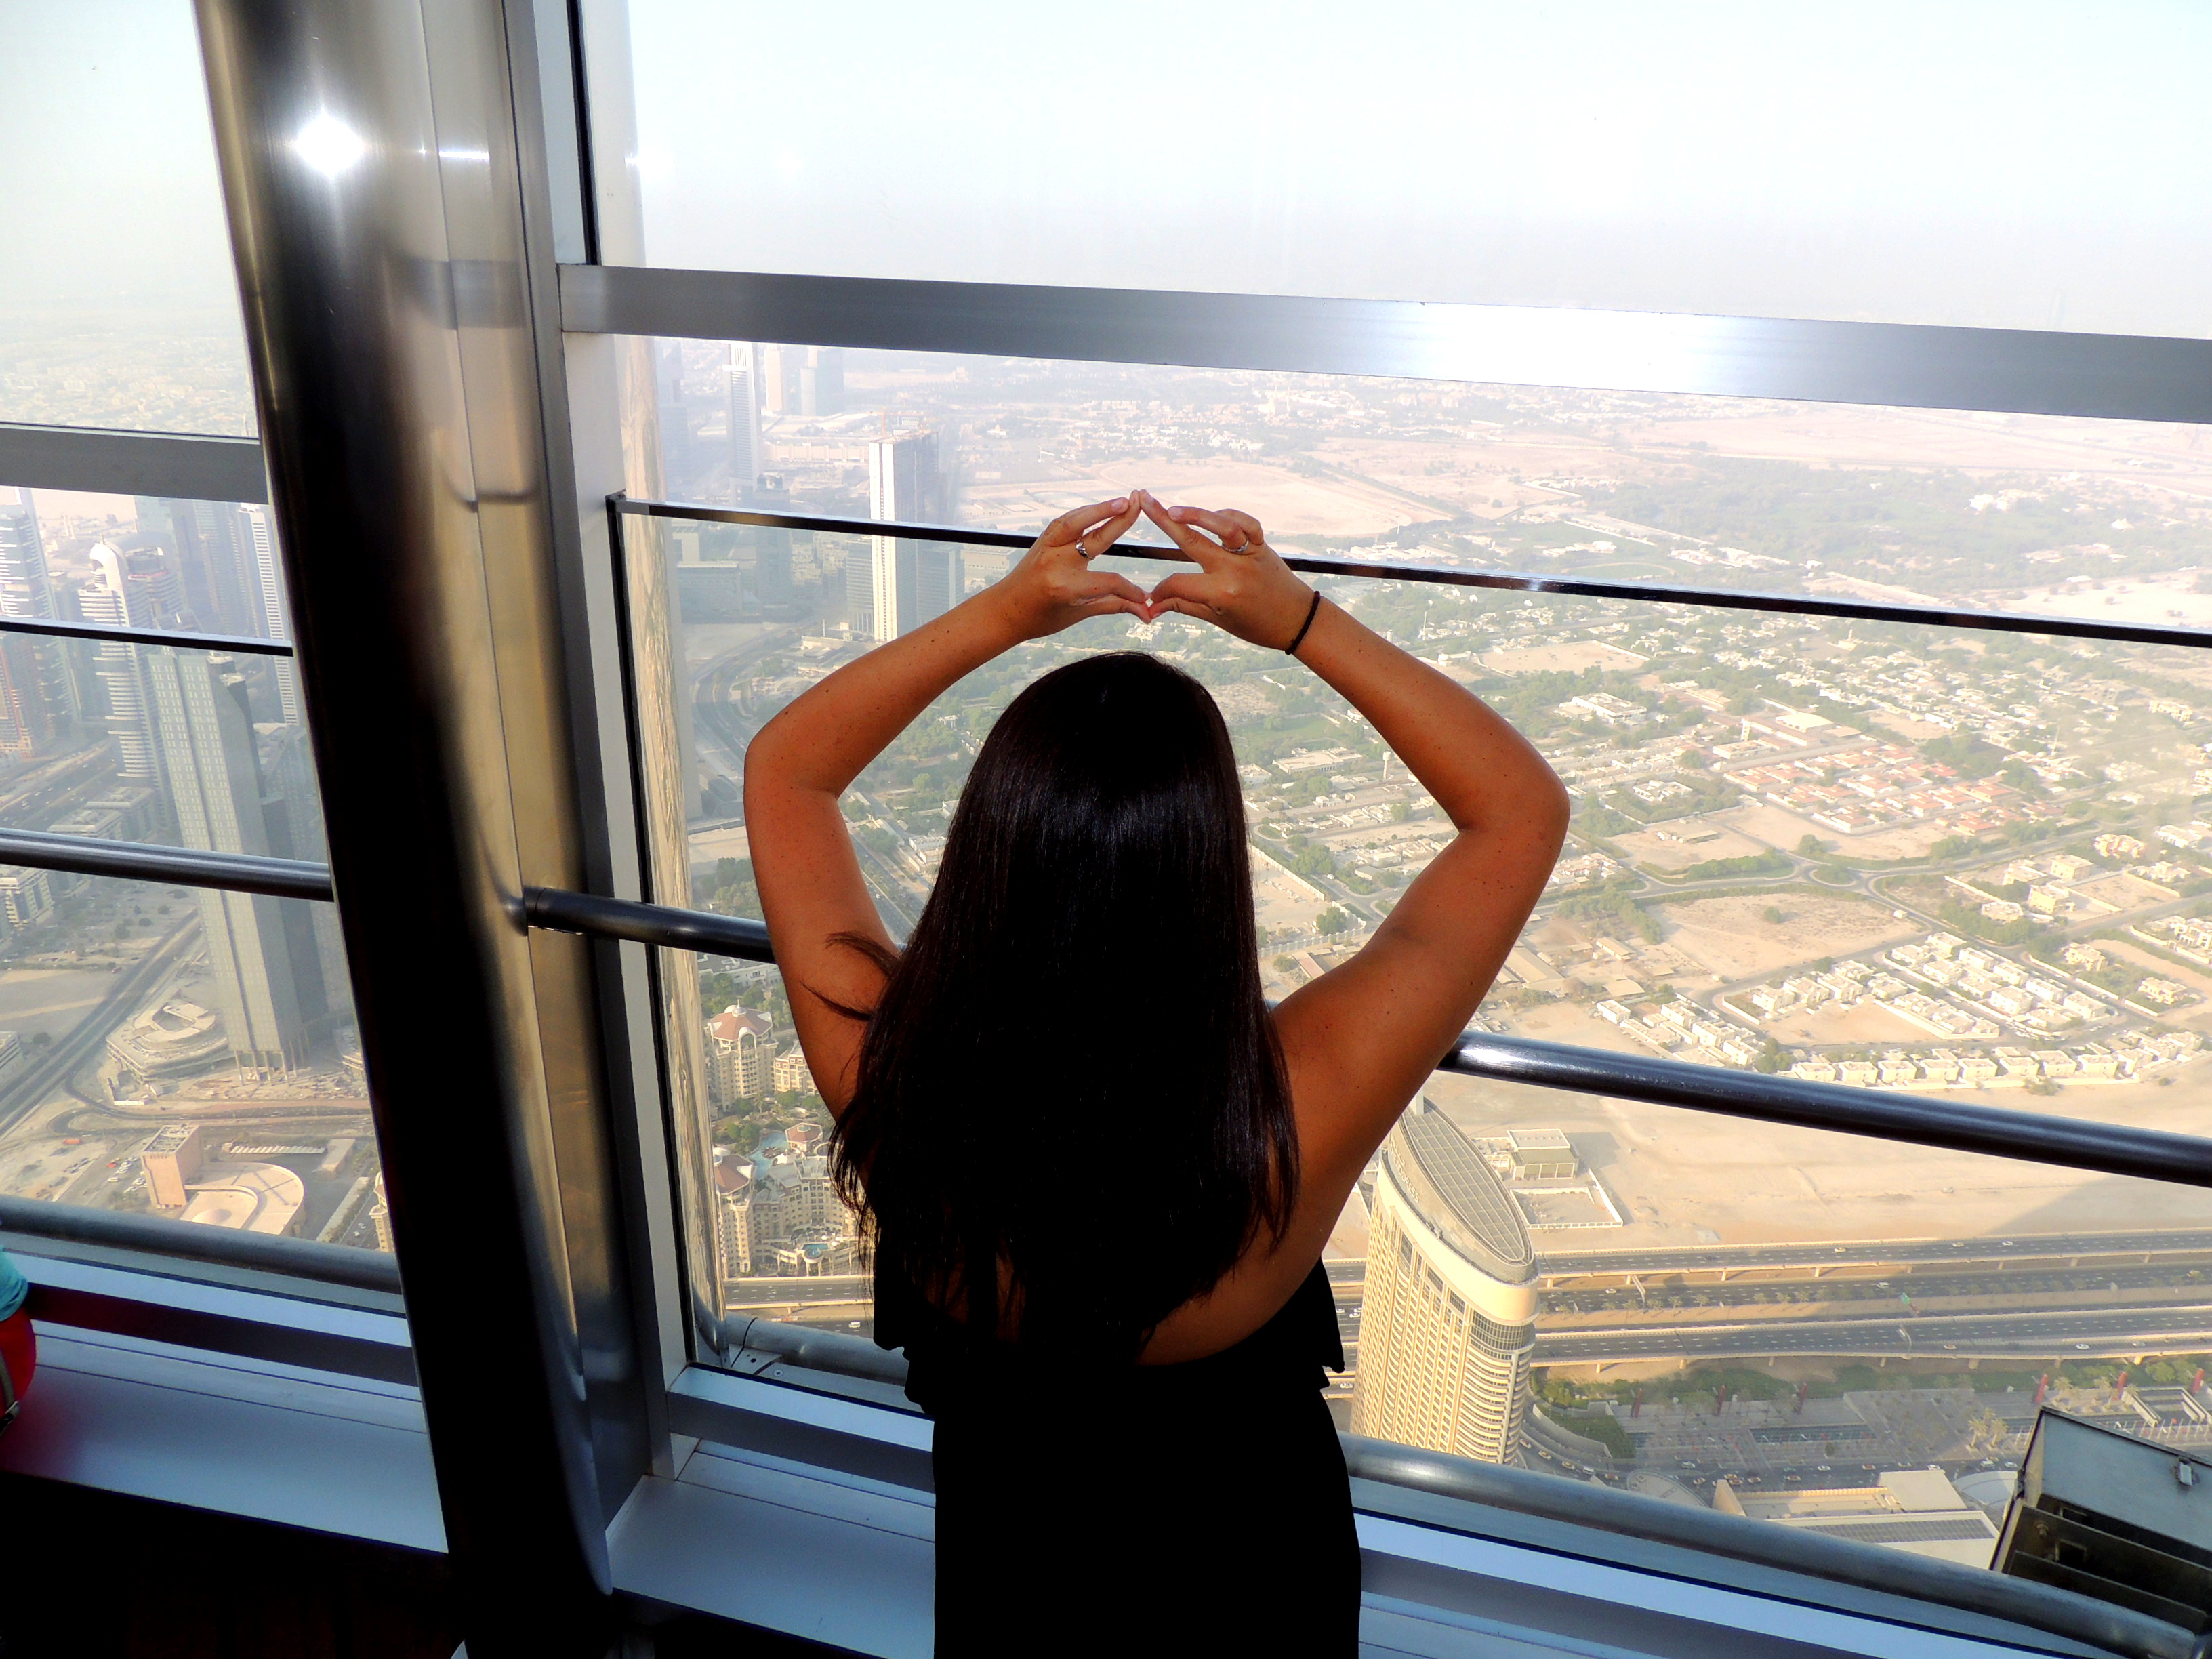 Throwing it from the top of the world's tallest building. TSM.